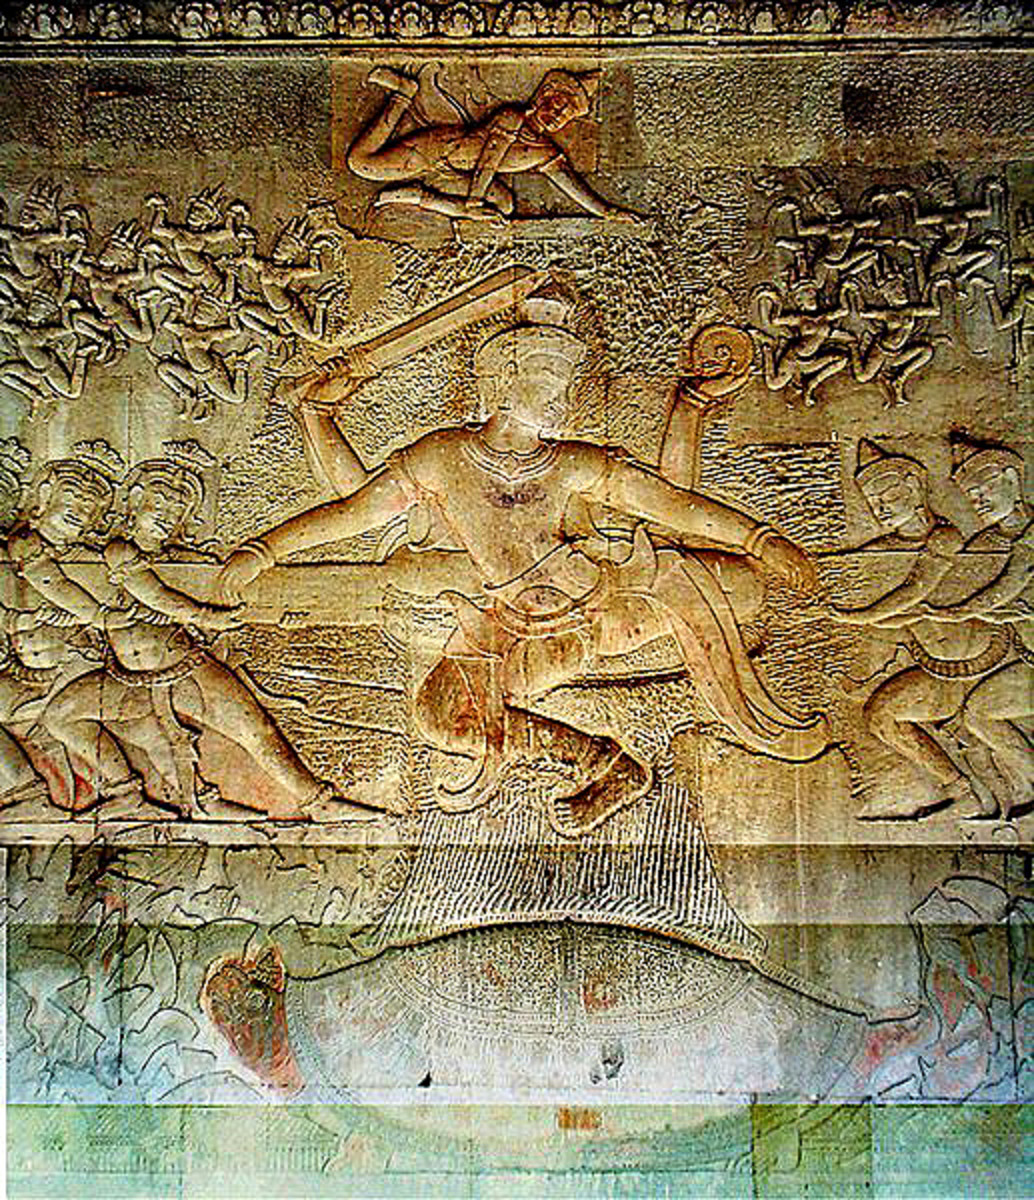 This bas-relief sculpture from Angkor Wat in Cambodia shows the God Vishnu. On either side are two rival groups of minor deities, the Asuras and the Devas, engaged in a battle, tugging on a long pole